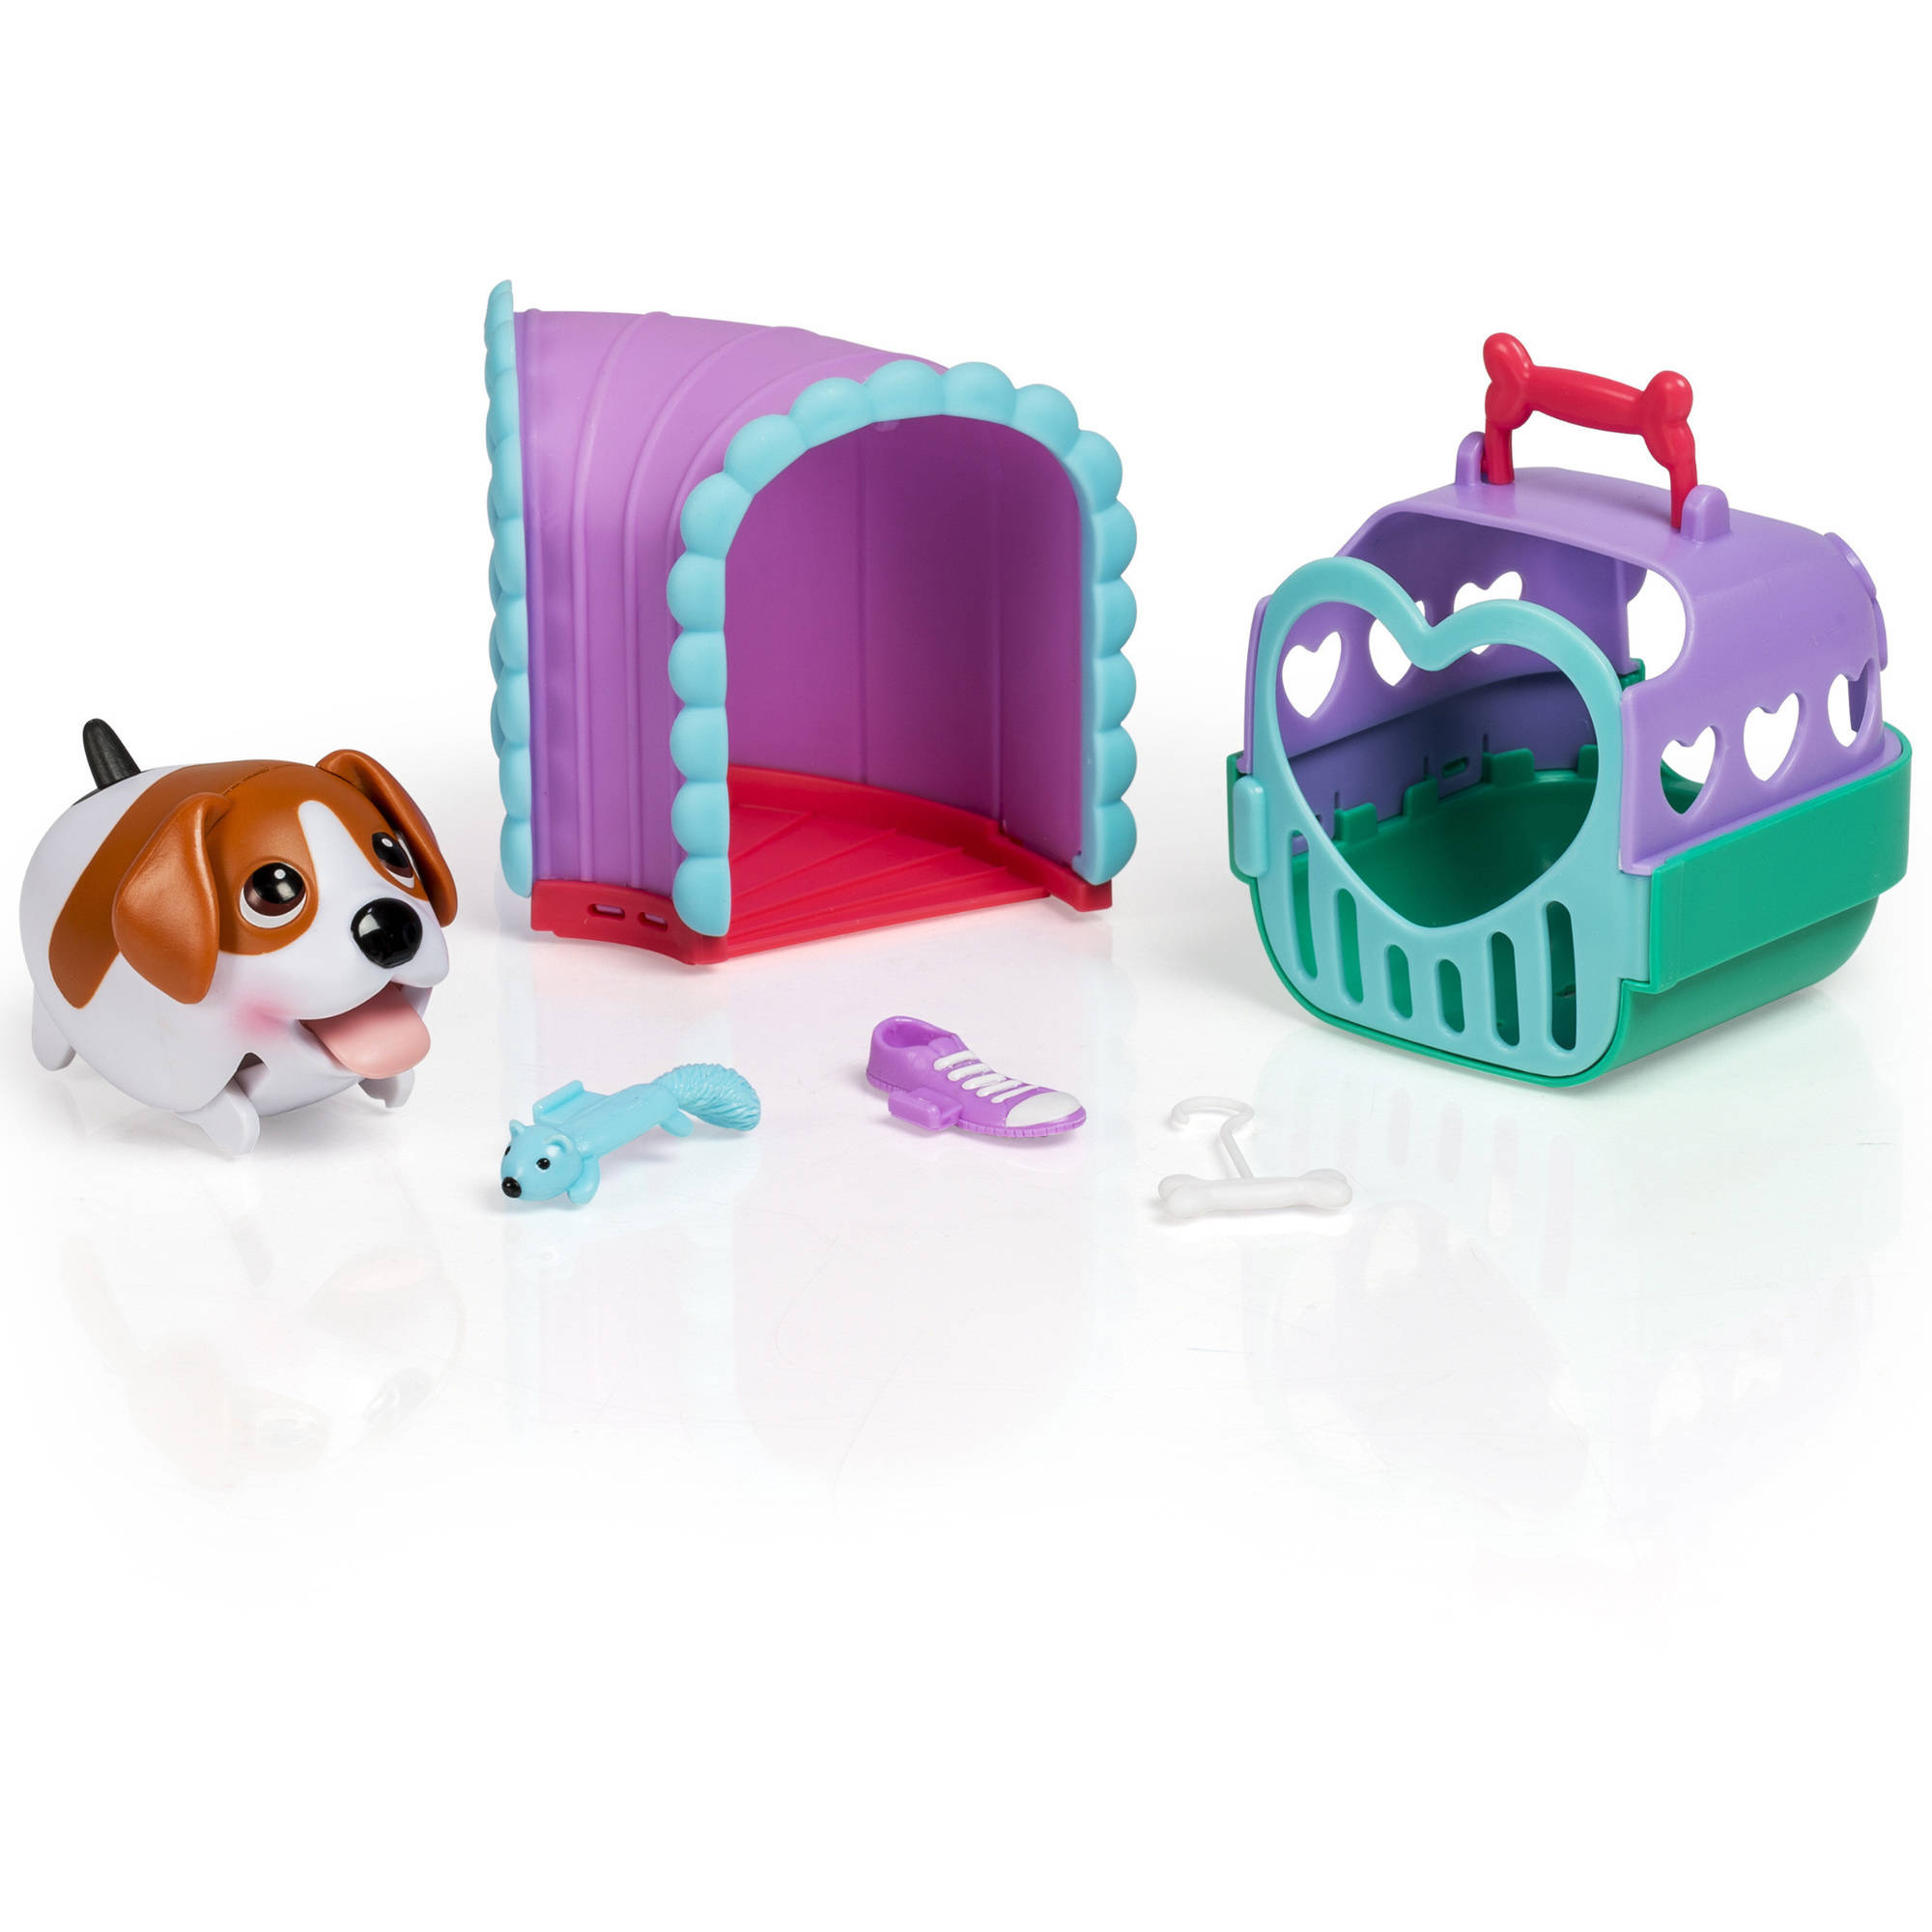 Chubby Puppies The Tunnel Course Play Set